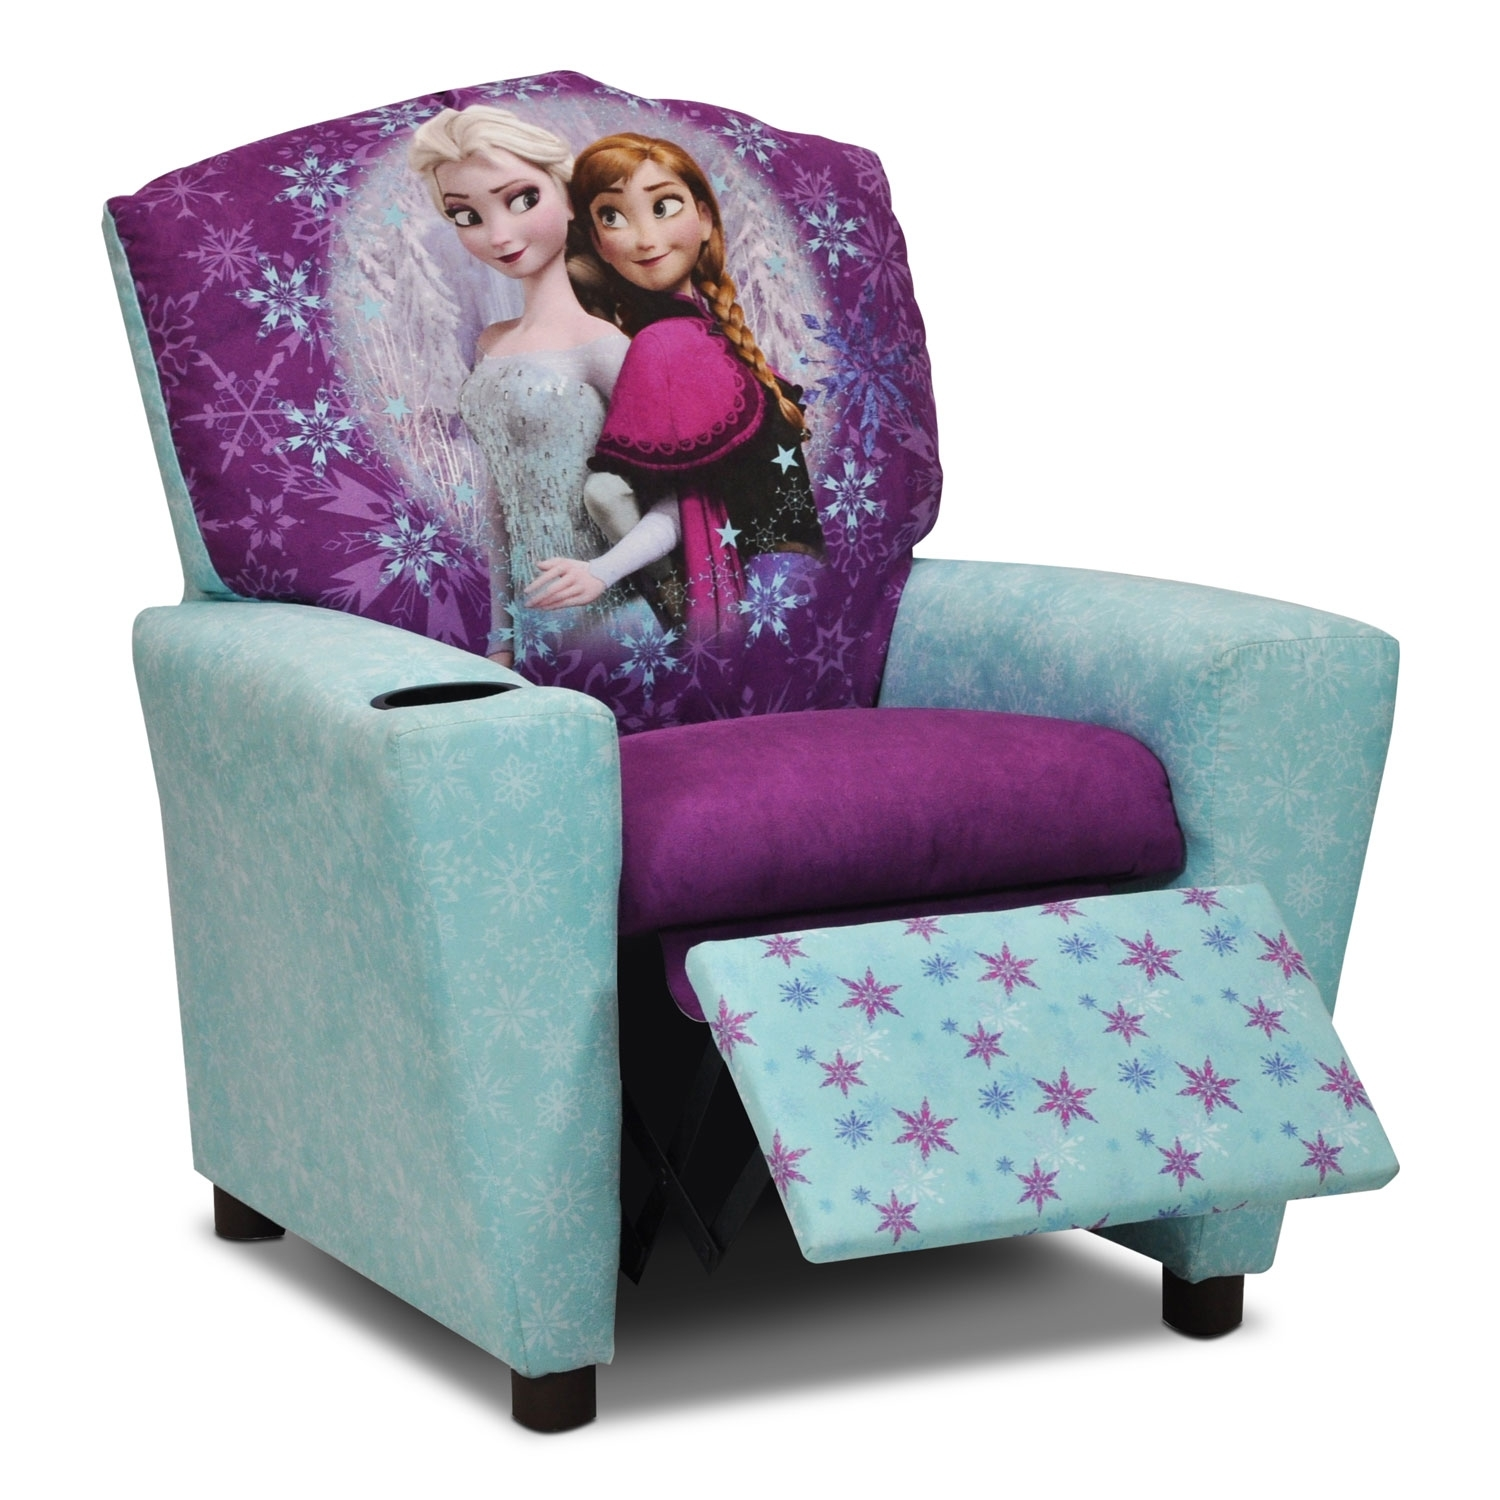 Sofas Center Kids Teens Sofas Armchairs Ebay Sofa Chair Beds In Personalized Kids Chairs And Sofas (Image 14 of 15)